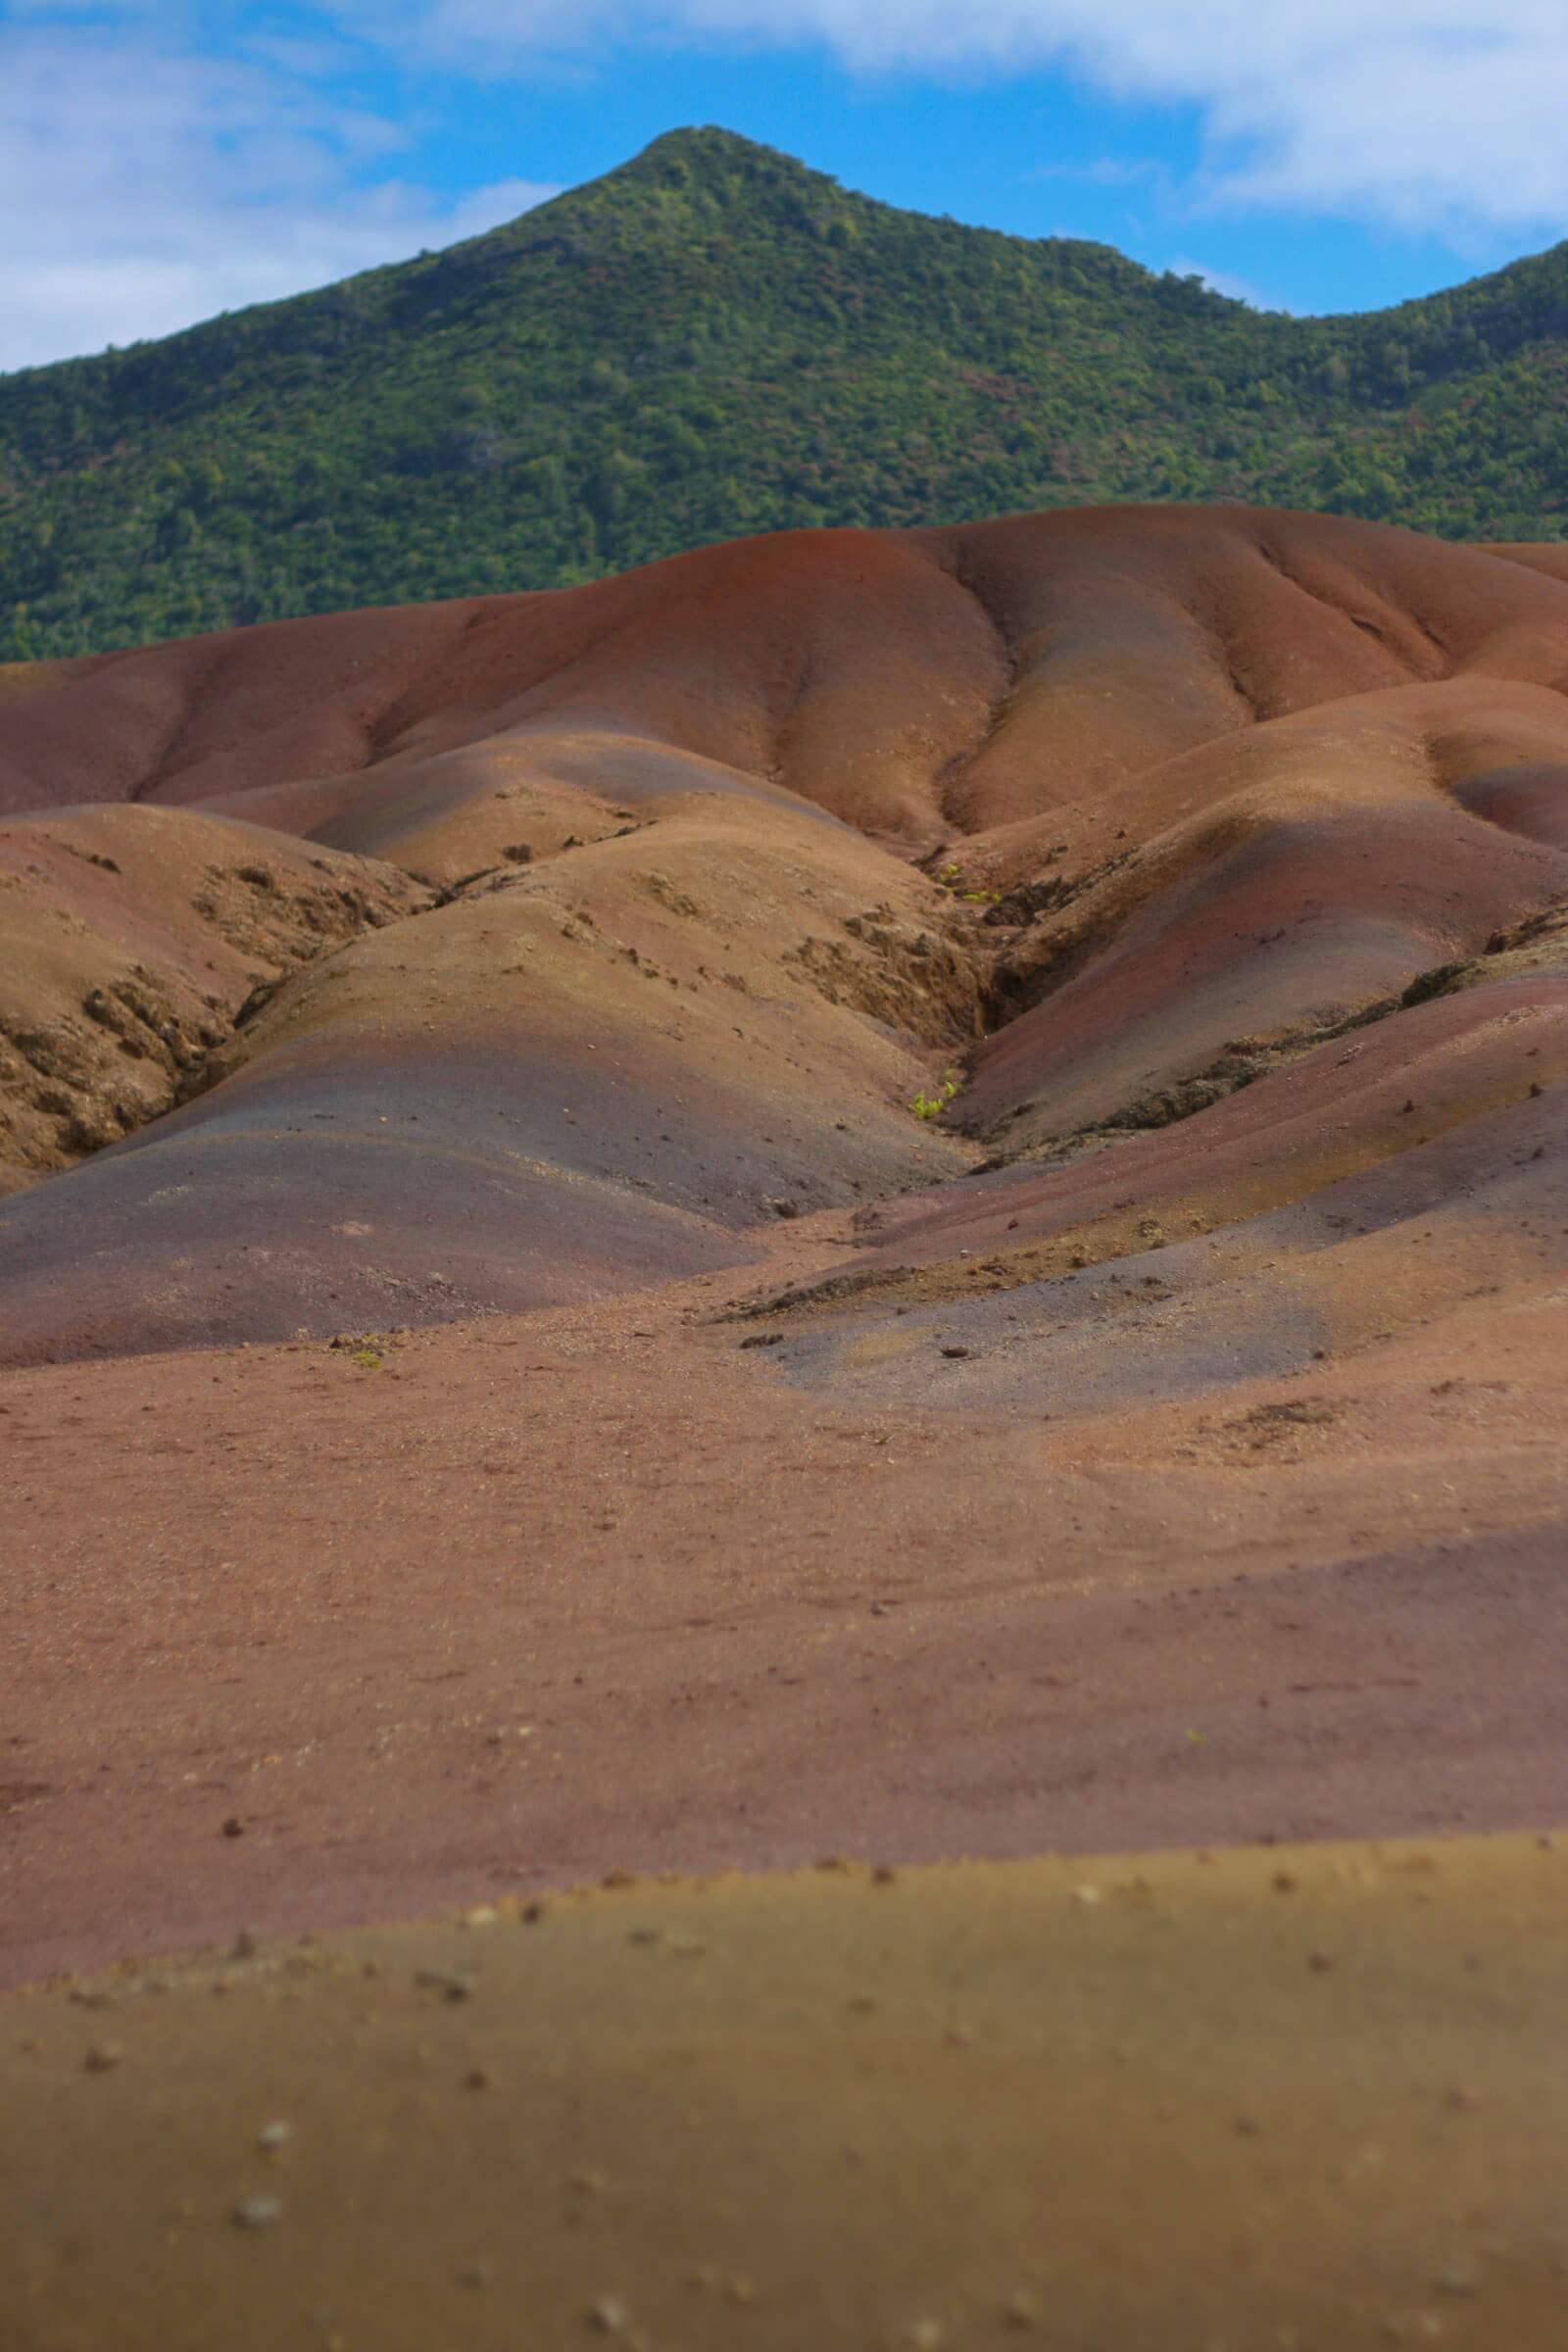 The 7-colored sands of Mauritius are a geological wonder and unexplained by geologists